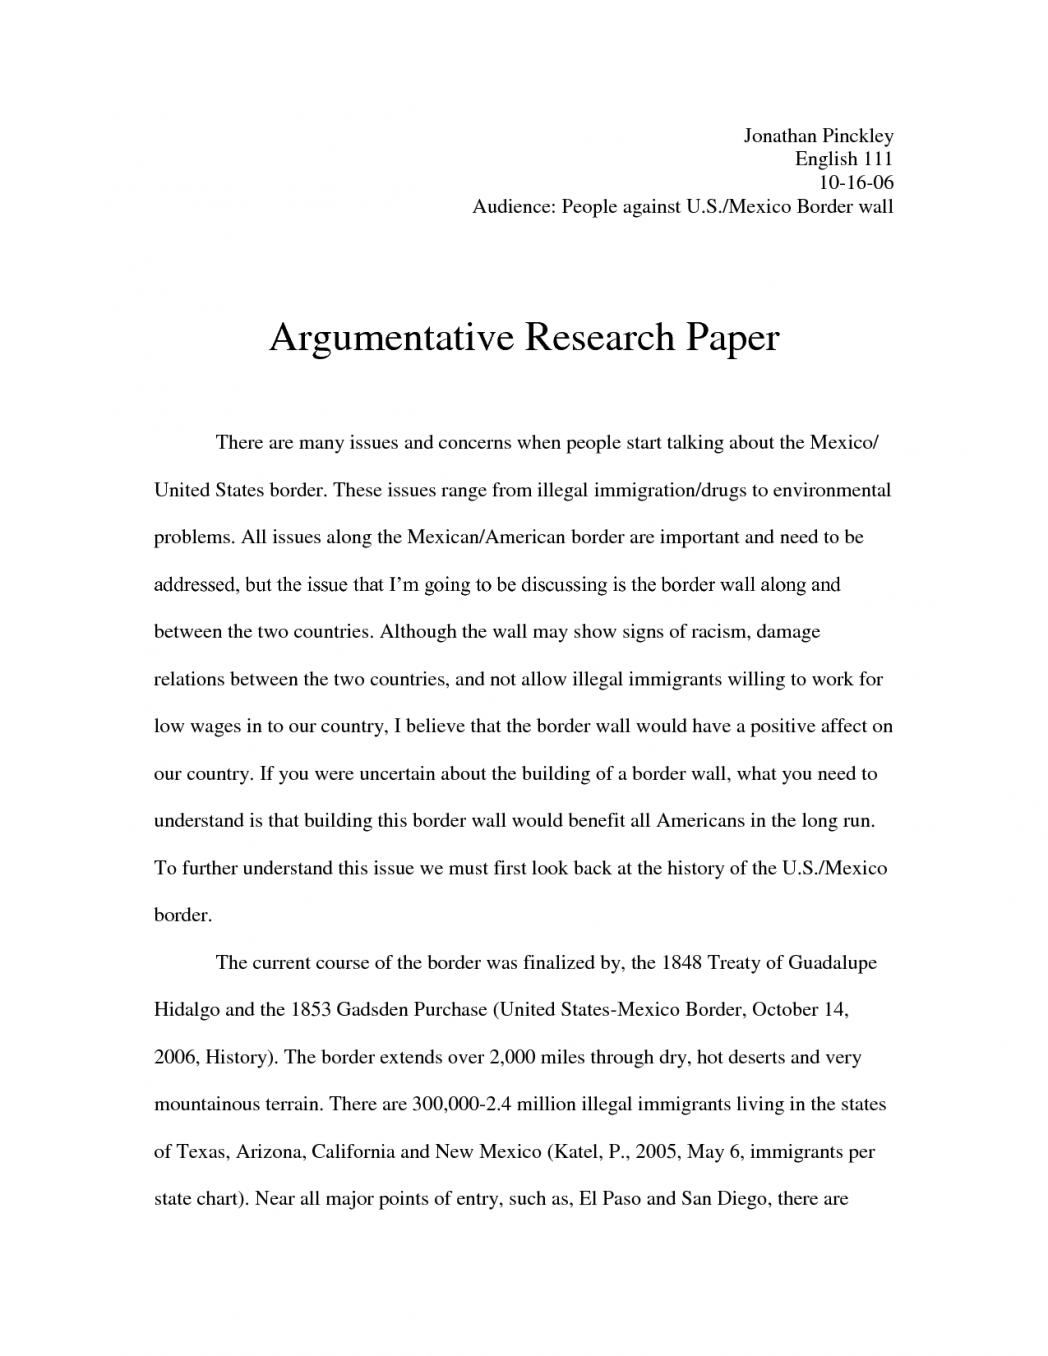 003 Argumentative Essay On Illegal Immigration Argument Research Persuasive Why Is Good Pgune Reform In America Topics Control Pro Thesis Rights 1048x1356 Wonderful Laws Full